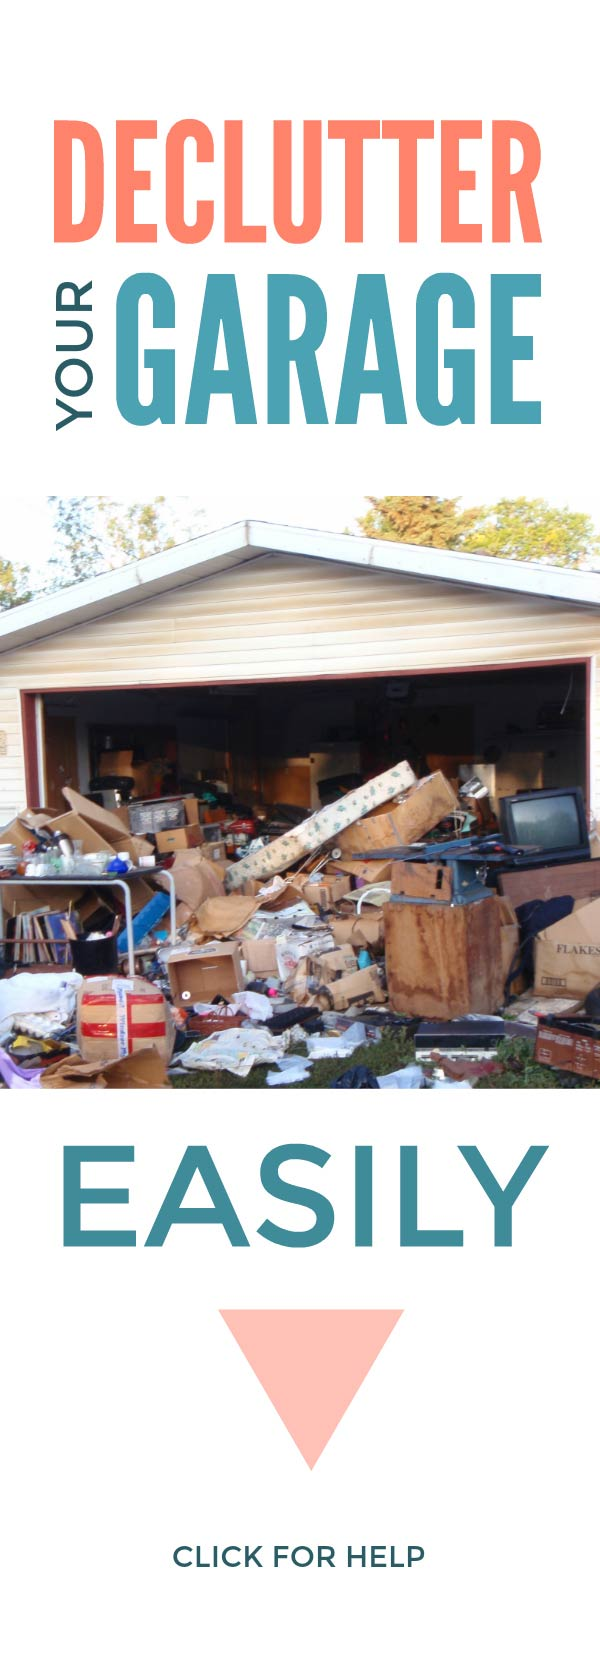 Declutter your garage with these simple hacks that will conquer your clutter and organize your garage without you getting overwhelmed #declutter #clutter #organize #hacks #simple